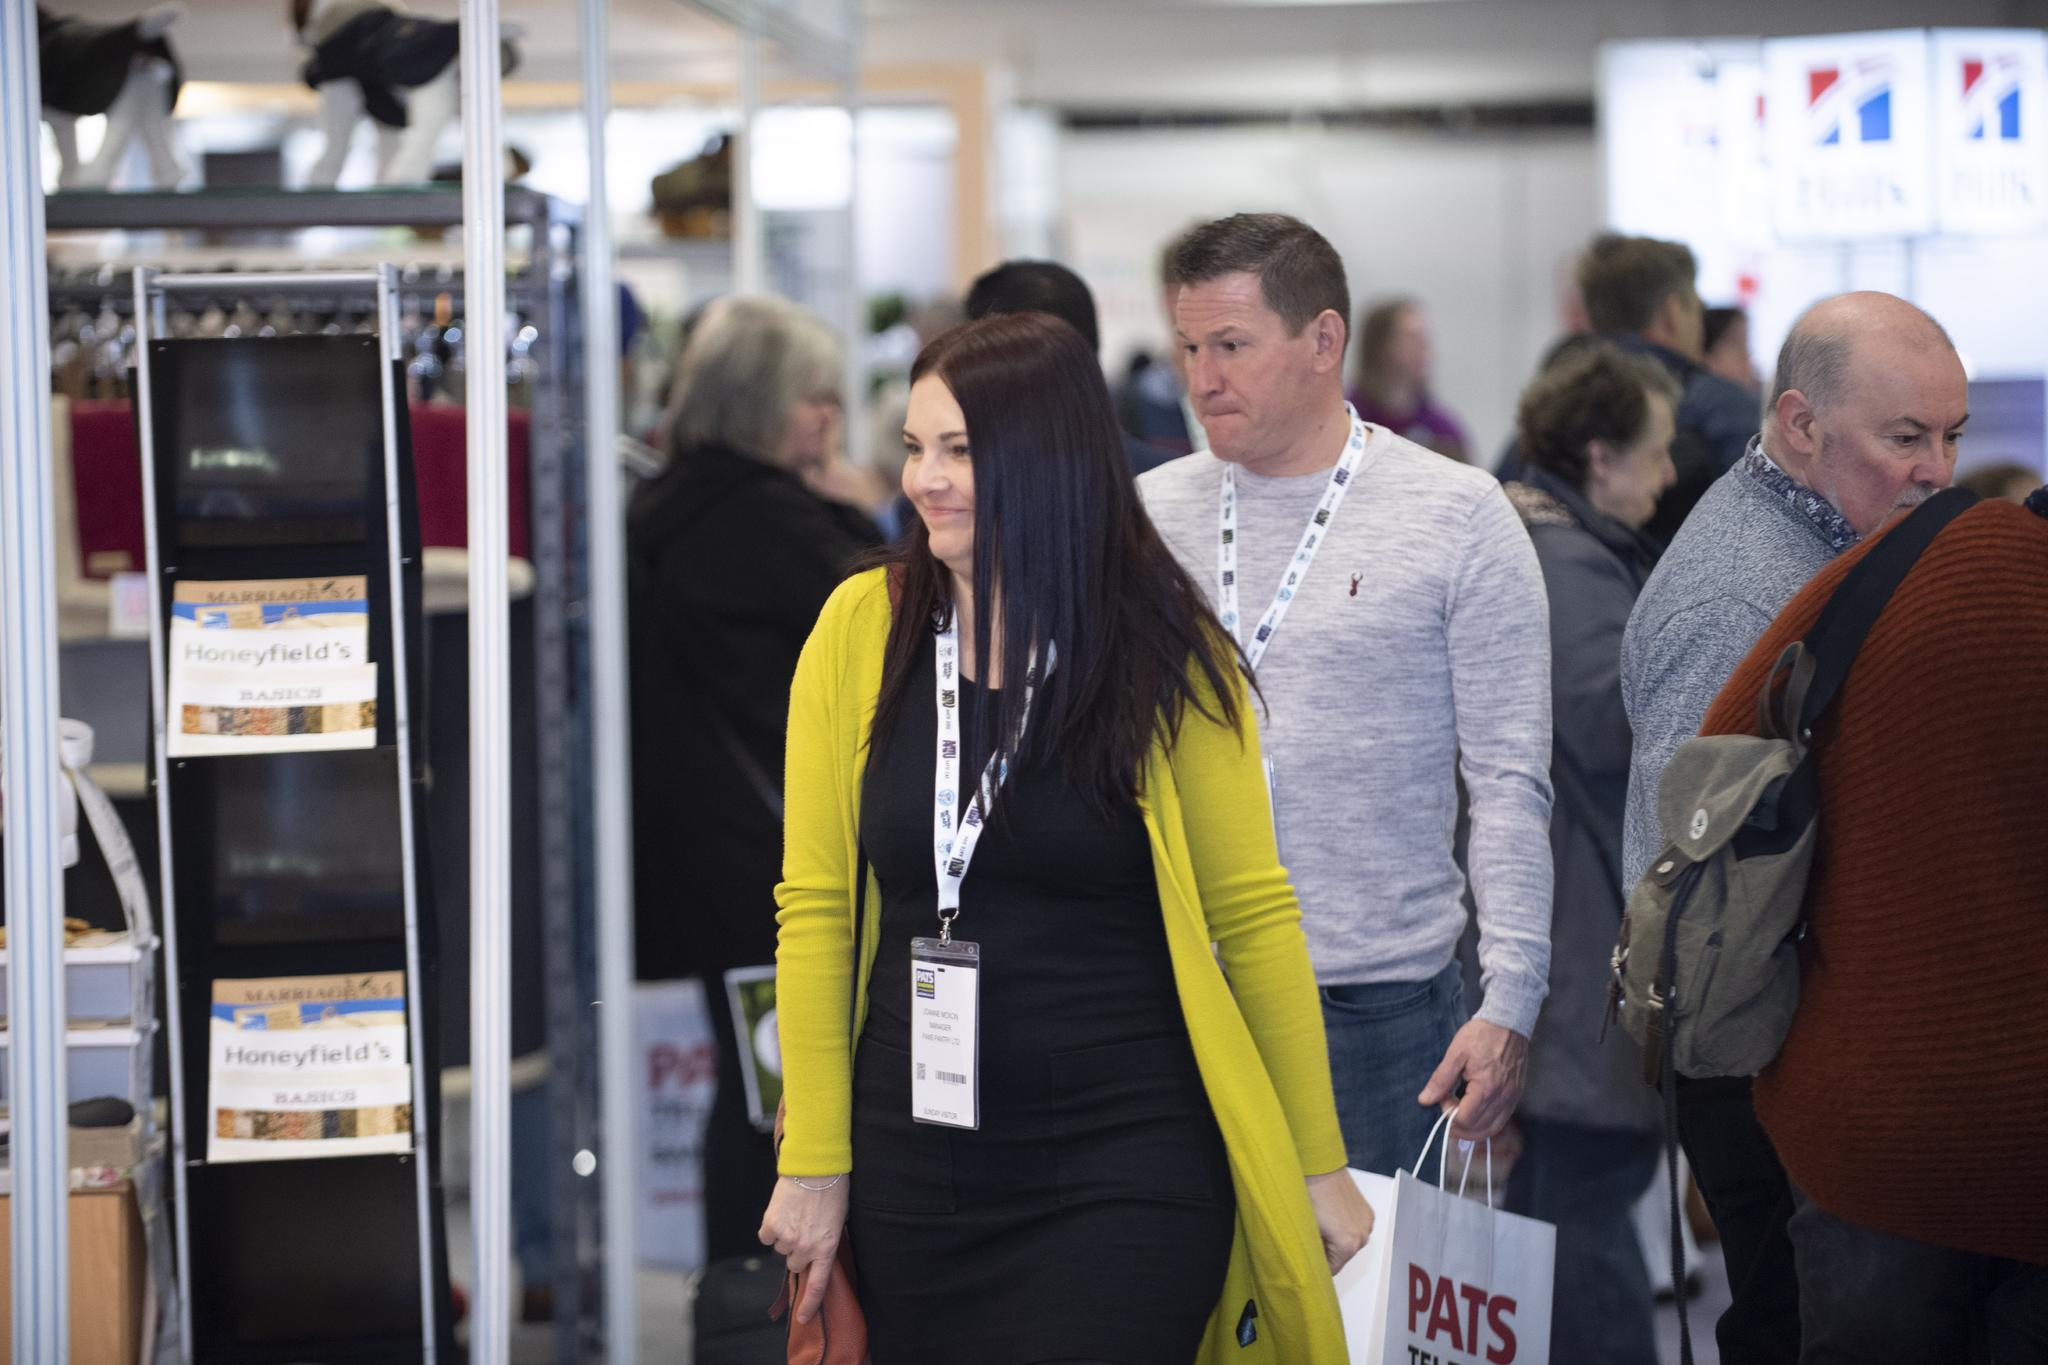 PATS again attracts impressive number of 'high quality' visitors